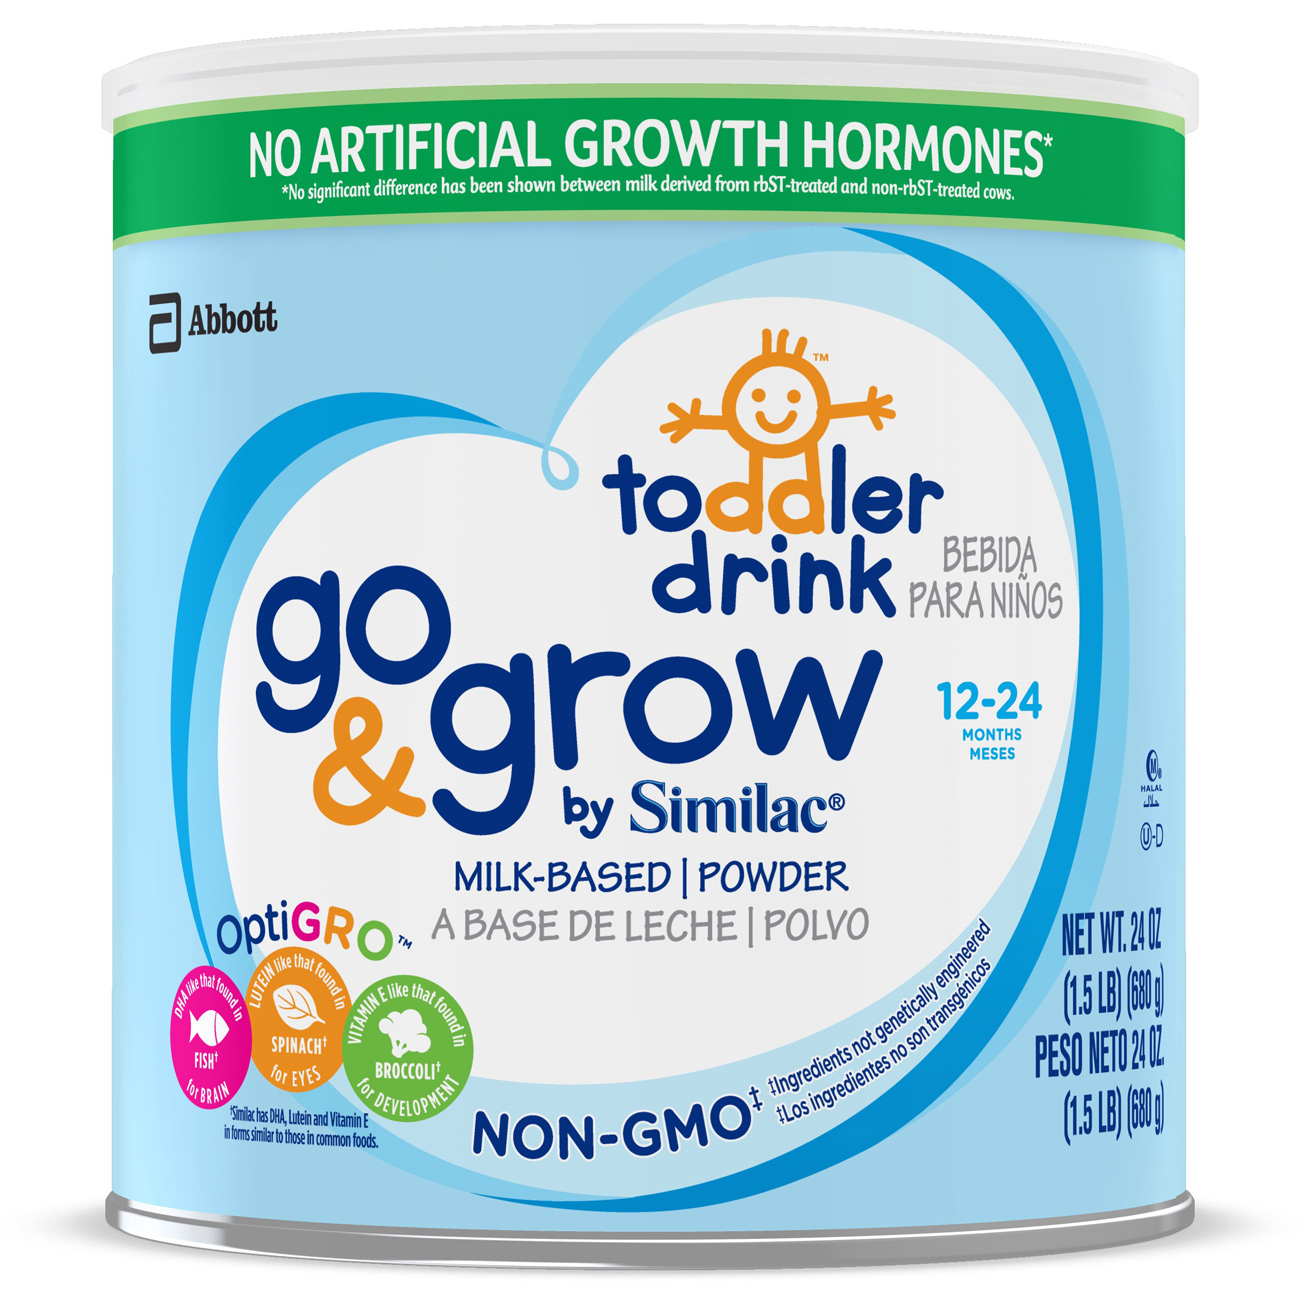 Similac Go & Grow NON-GMO Toddler Drink, Powder, 1.5 lb (Pack of 4)